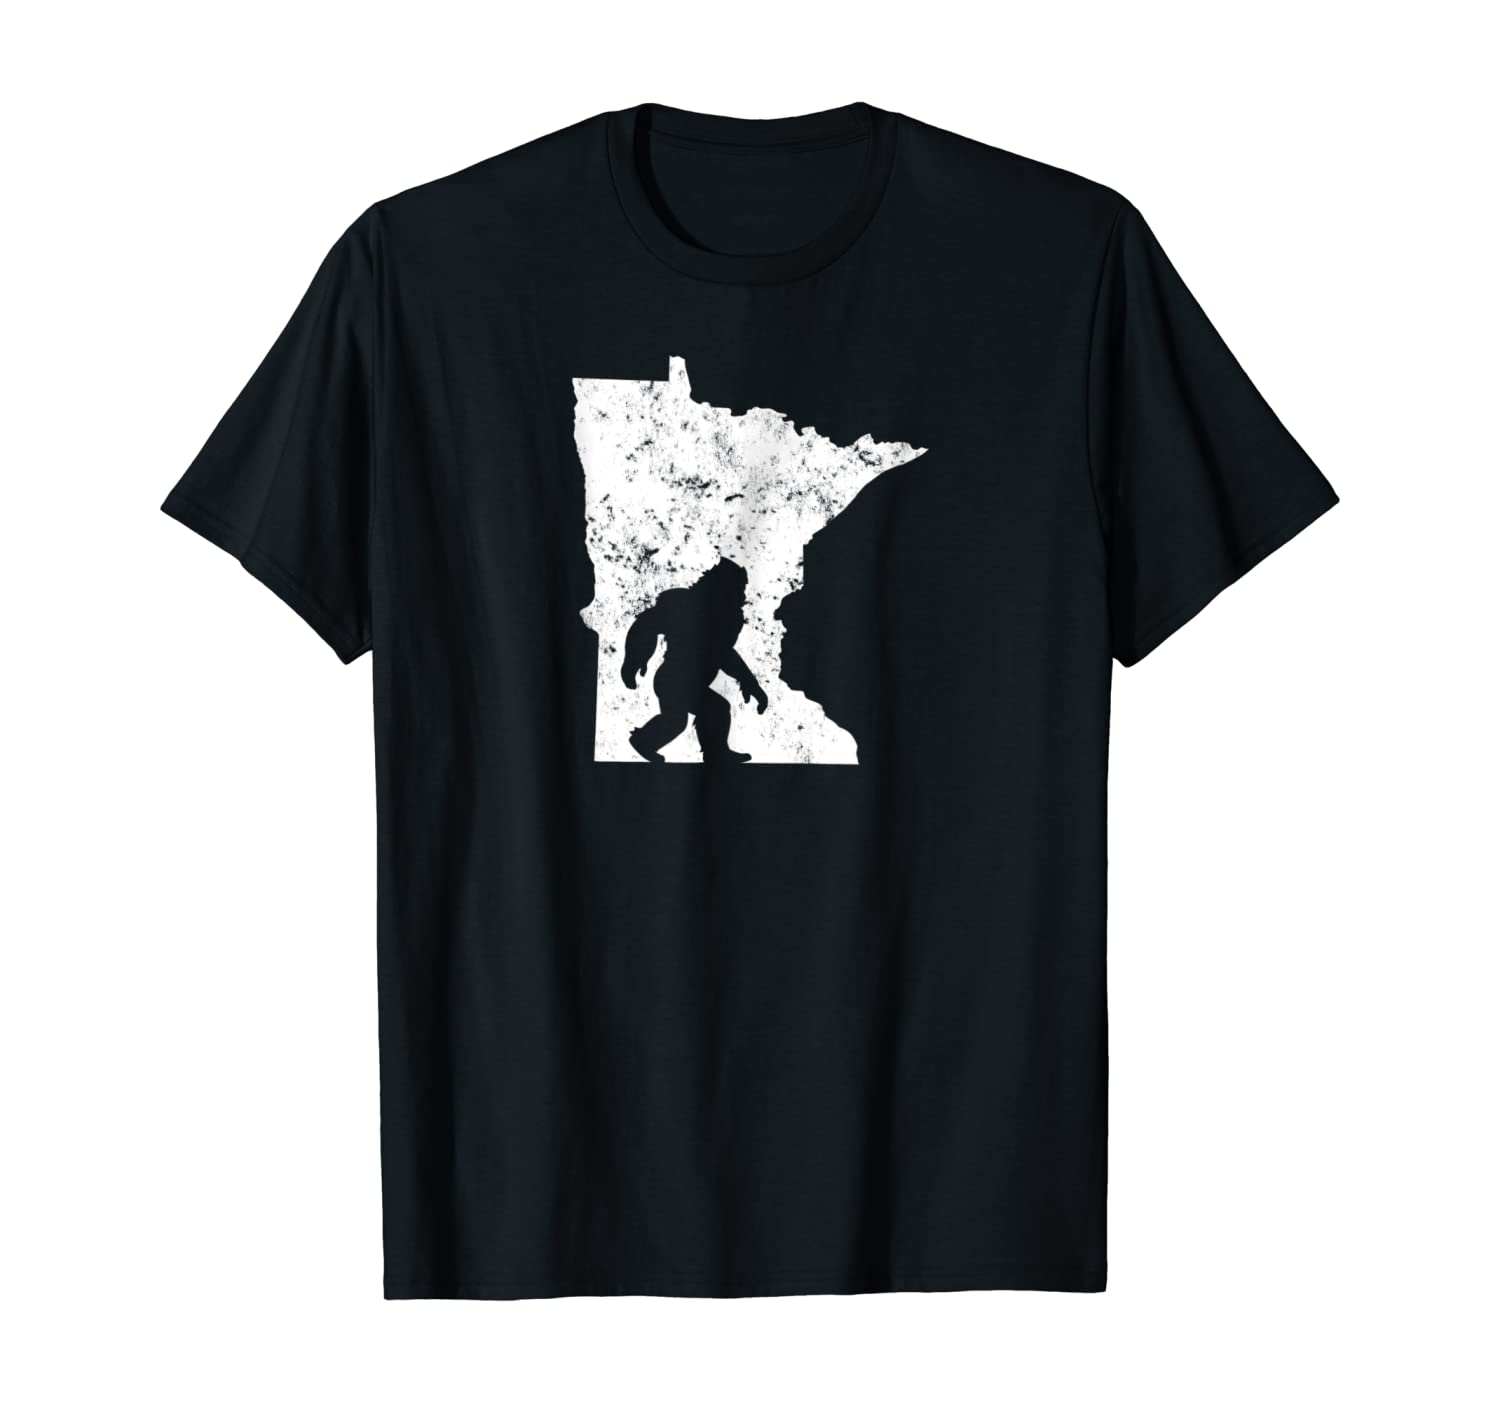 Bigfoot Sasquatch Sighted In State Of Minnesota T-Shirt